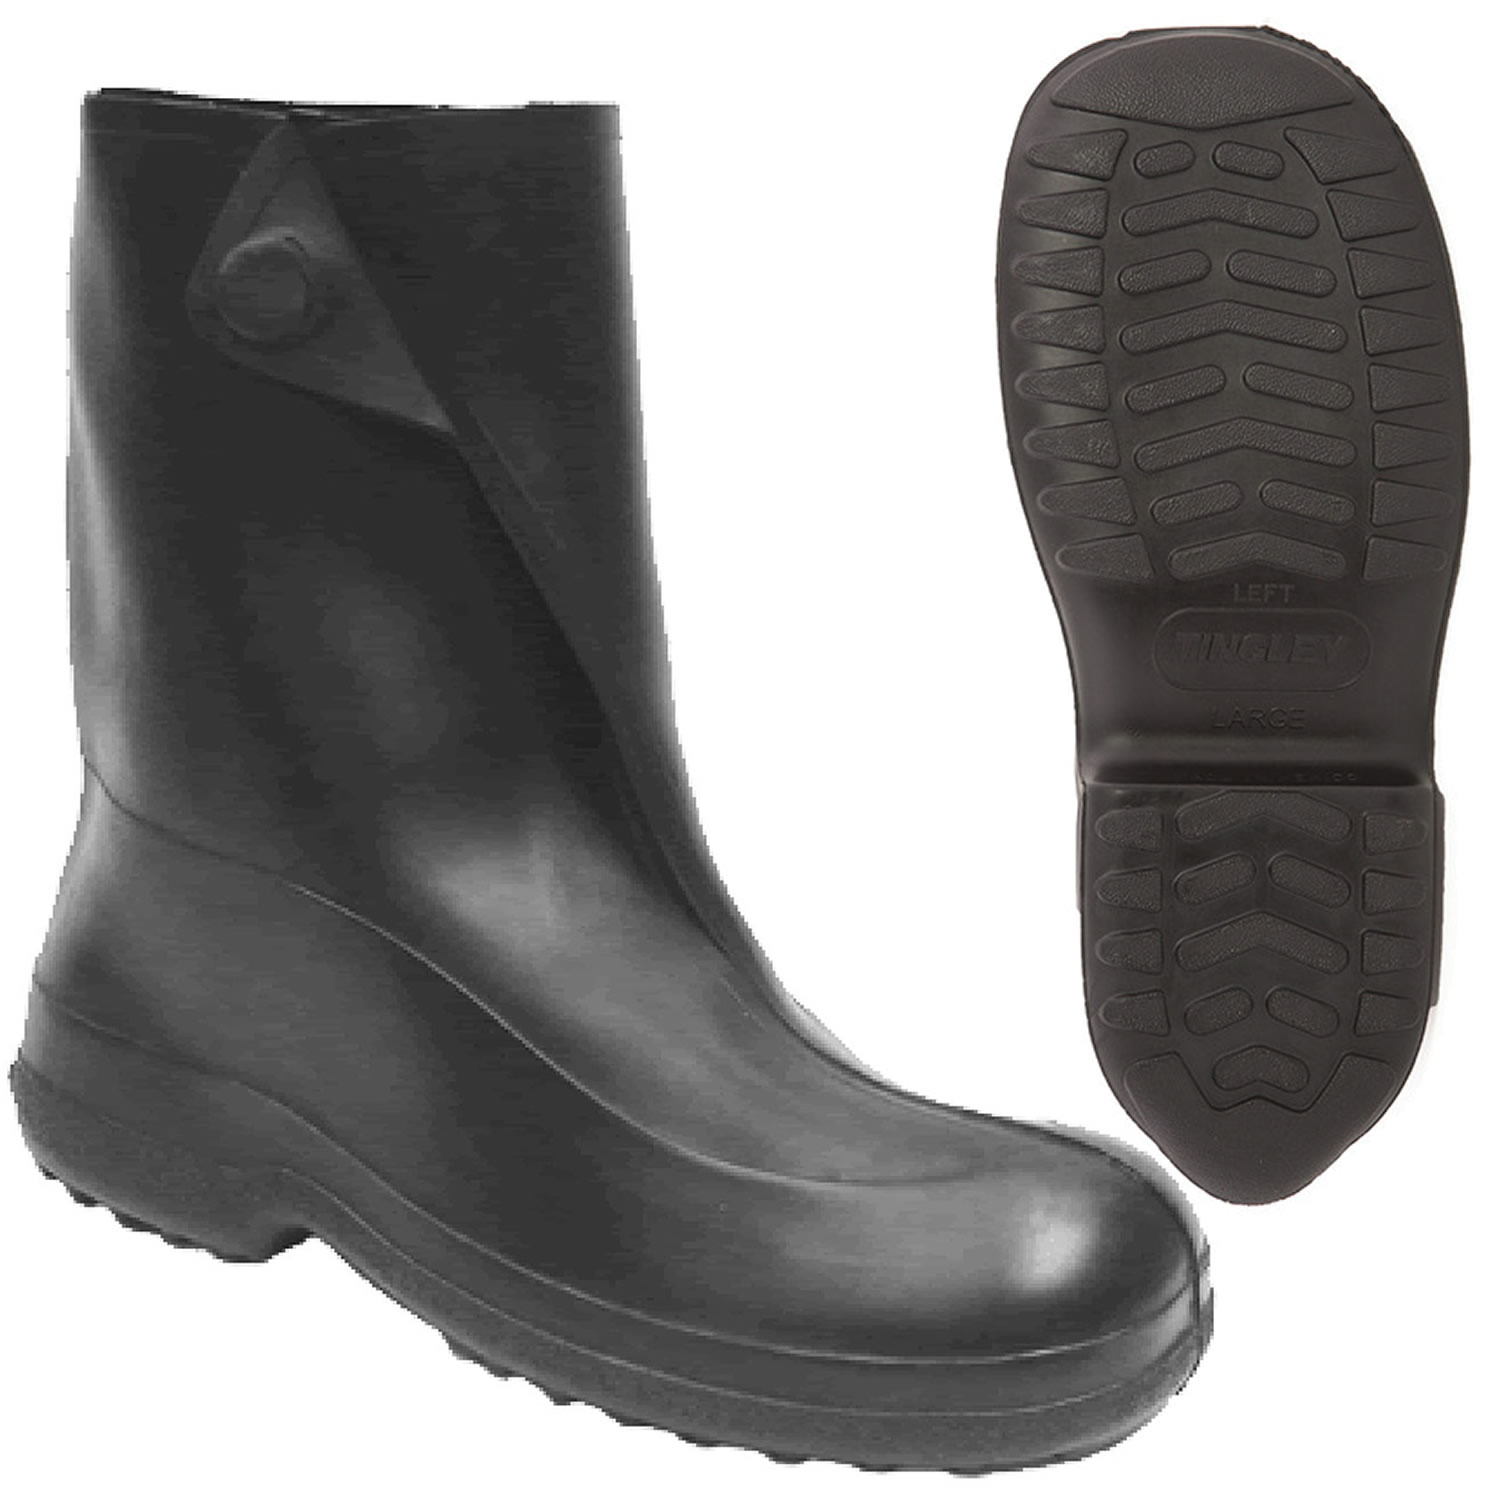 Men S 10 In Tingley Rubber Overshoe Boot